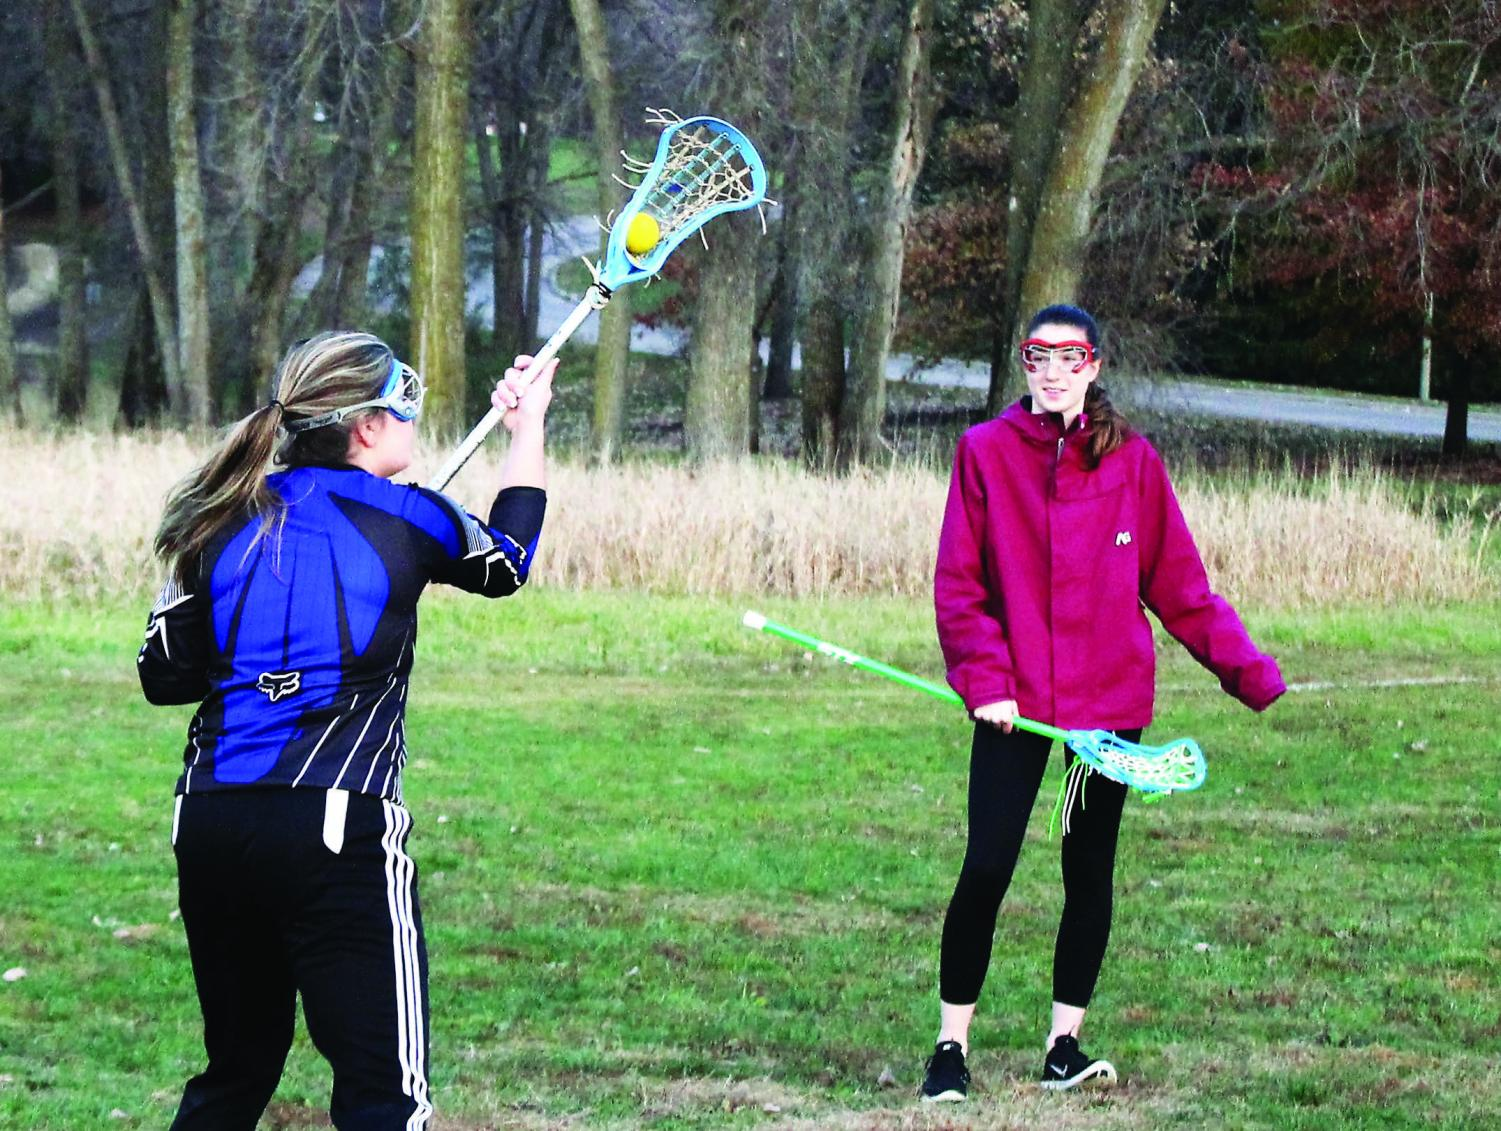 Fallon Cassidy ('19) and Frances Rhodes ('20) practice lacrosse skills by Lindeman Pond.